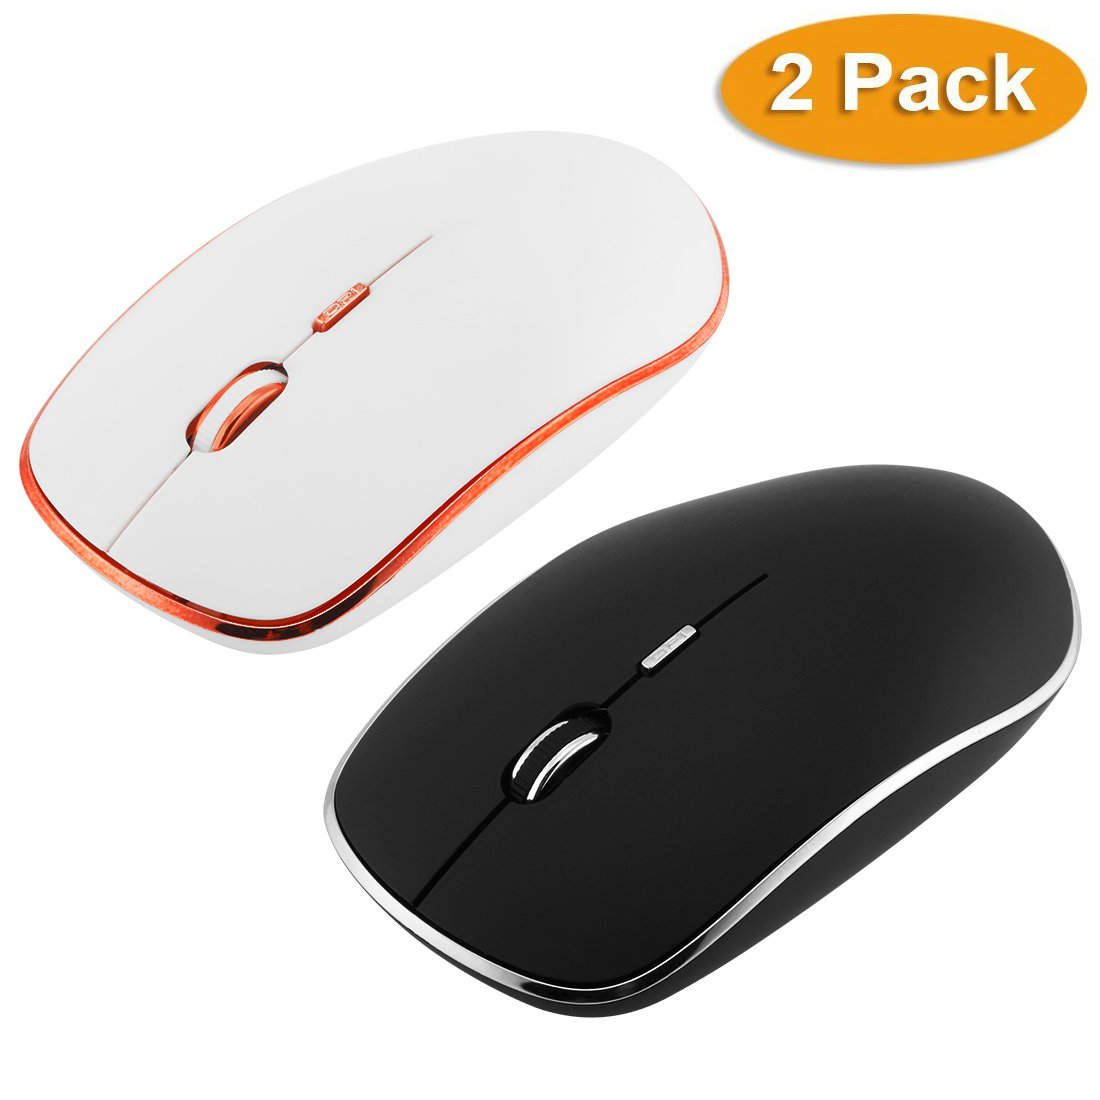 2.4G Wireless Mouse Slim Silent Computer Mouse With Nano Receiver,1800DPI Adjustable Optical Mouse Silent Click For PC Laptop